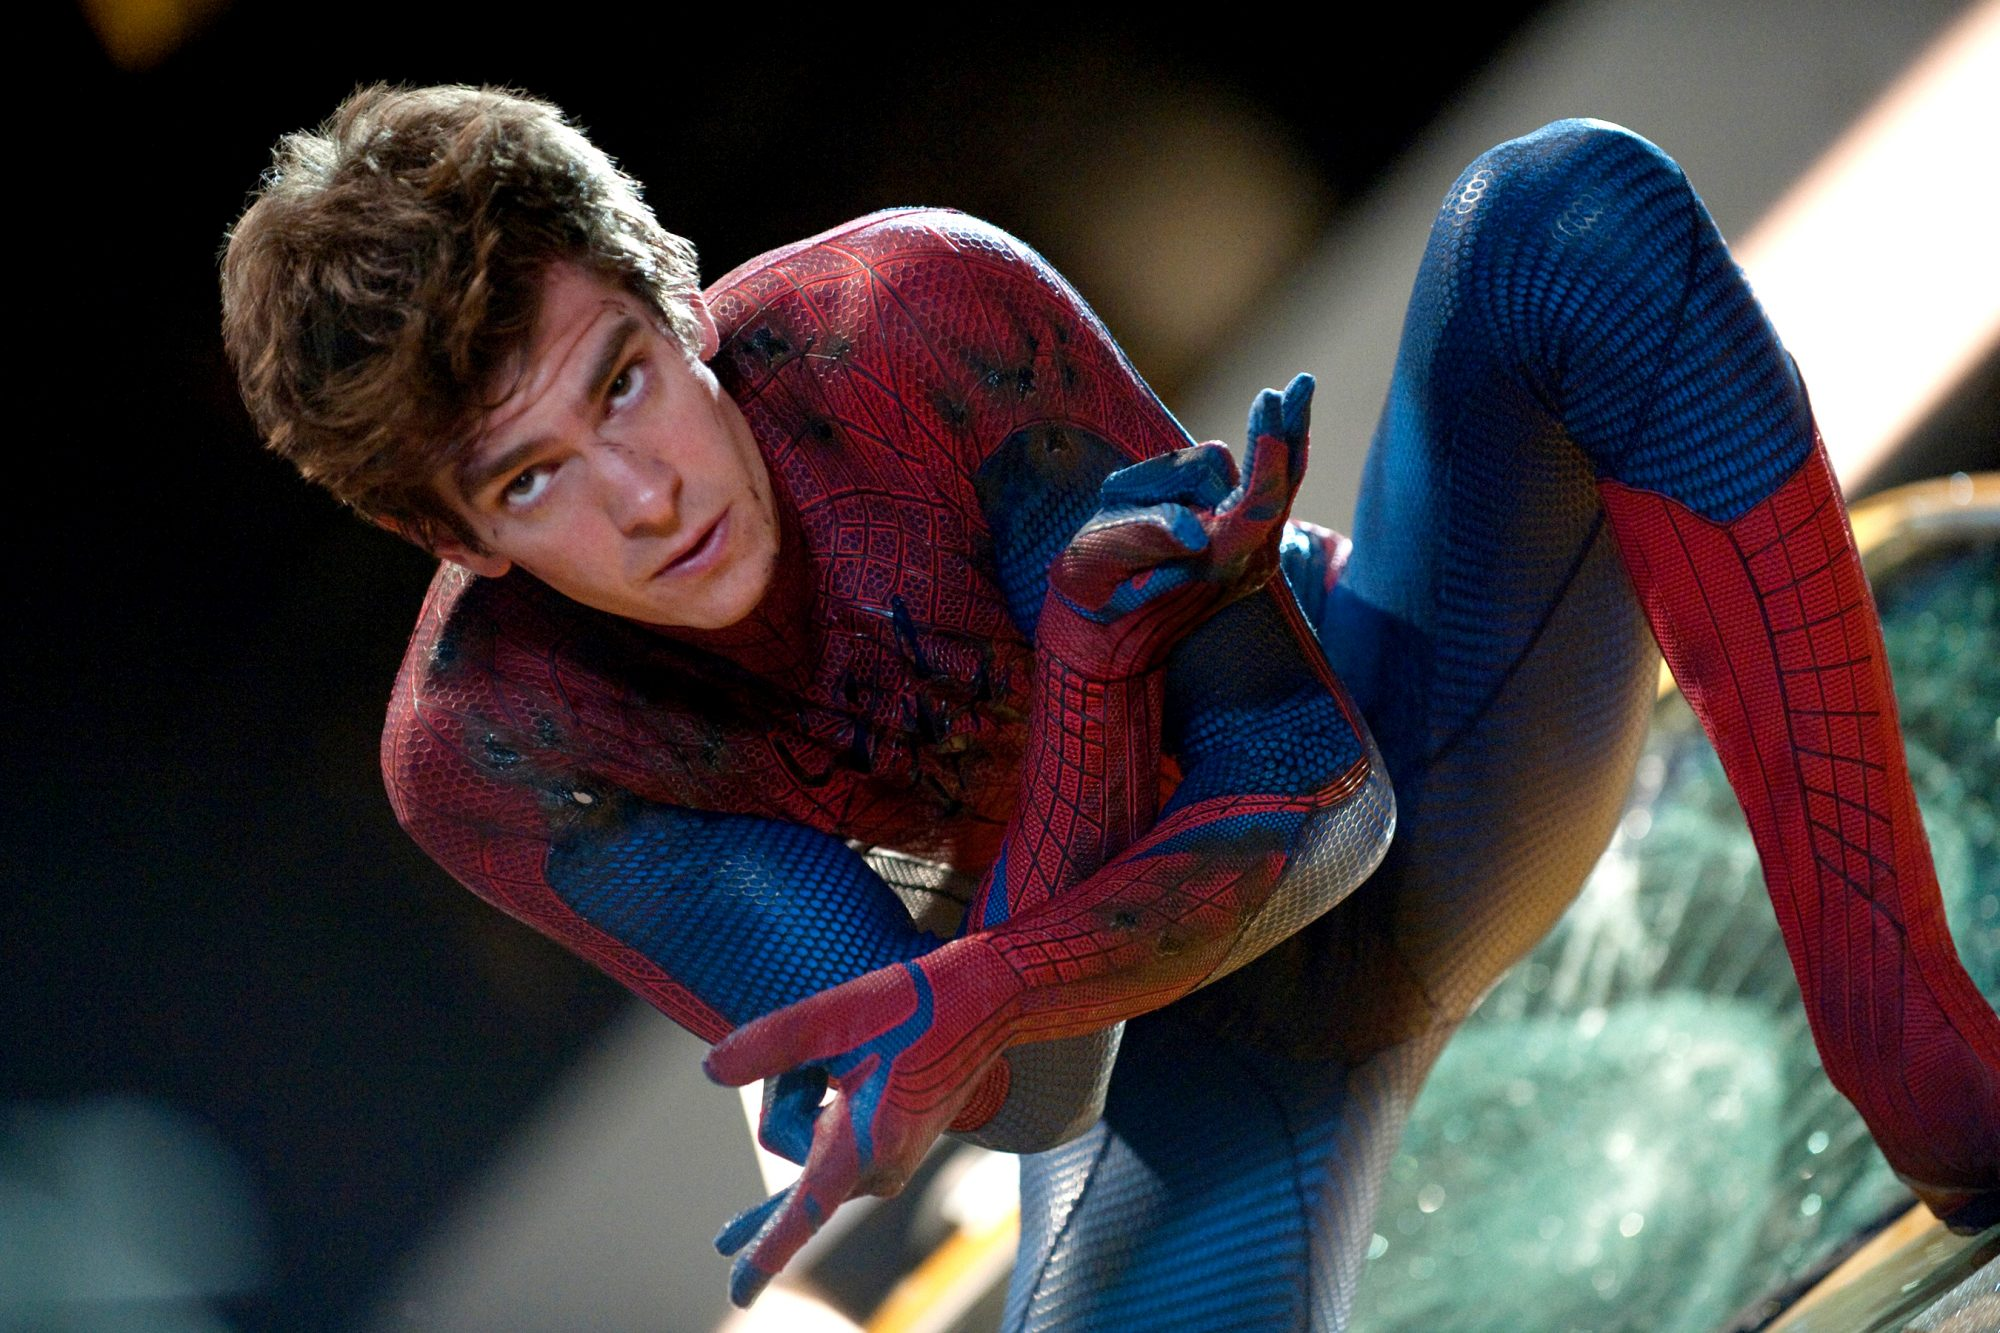 THE AMAZING SPIDER-MAN, Andrew Garfield, as Spider-Man, 2012. ph: Jamie Trueblood/©Columbia Pictures